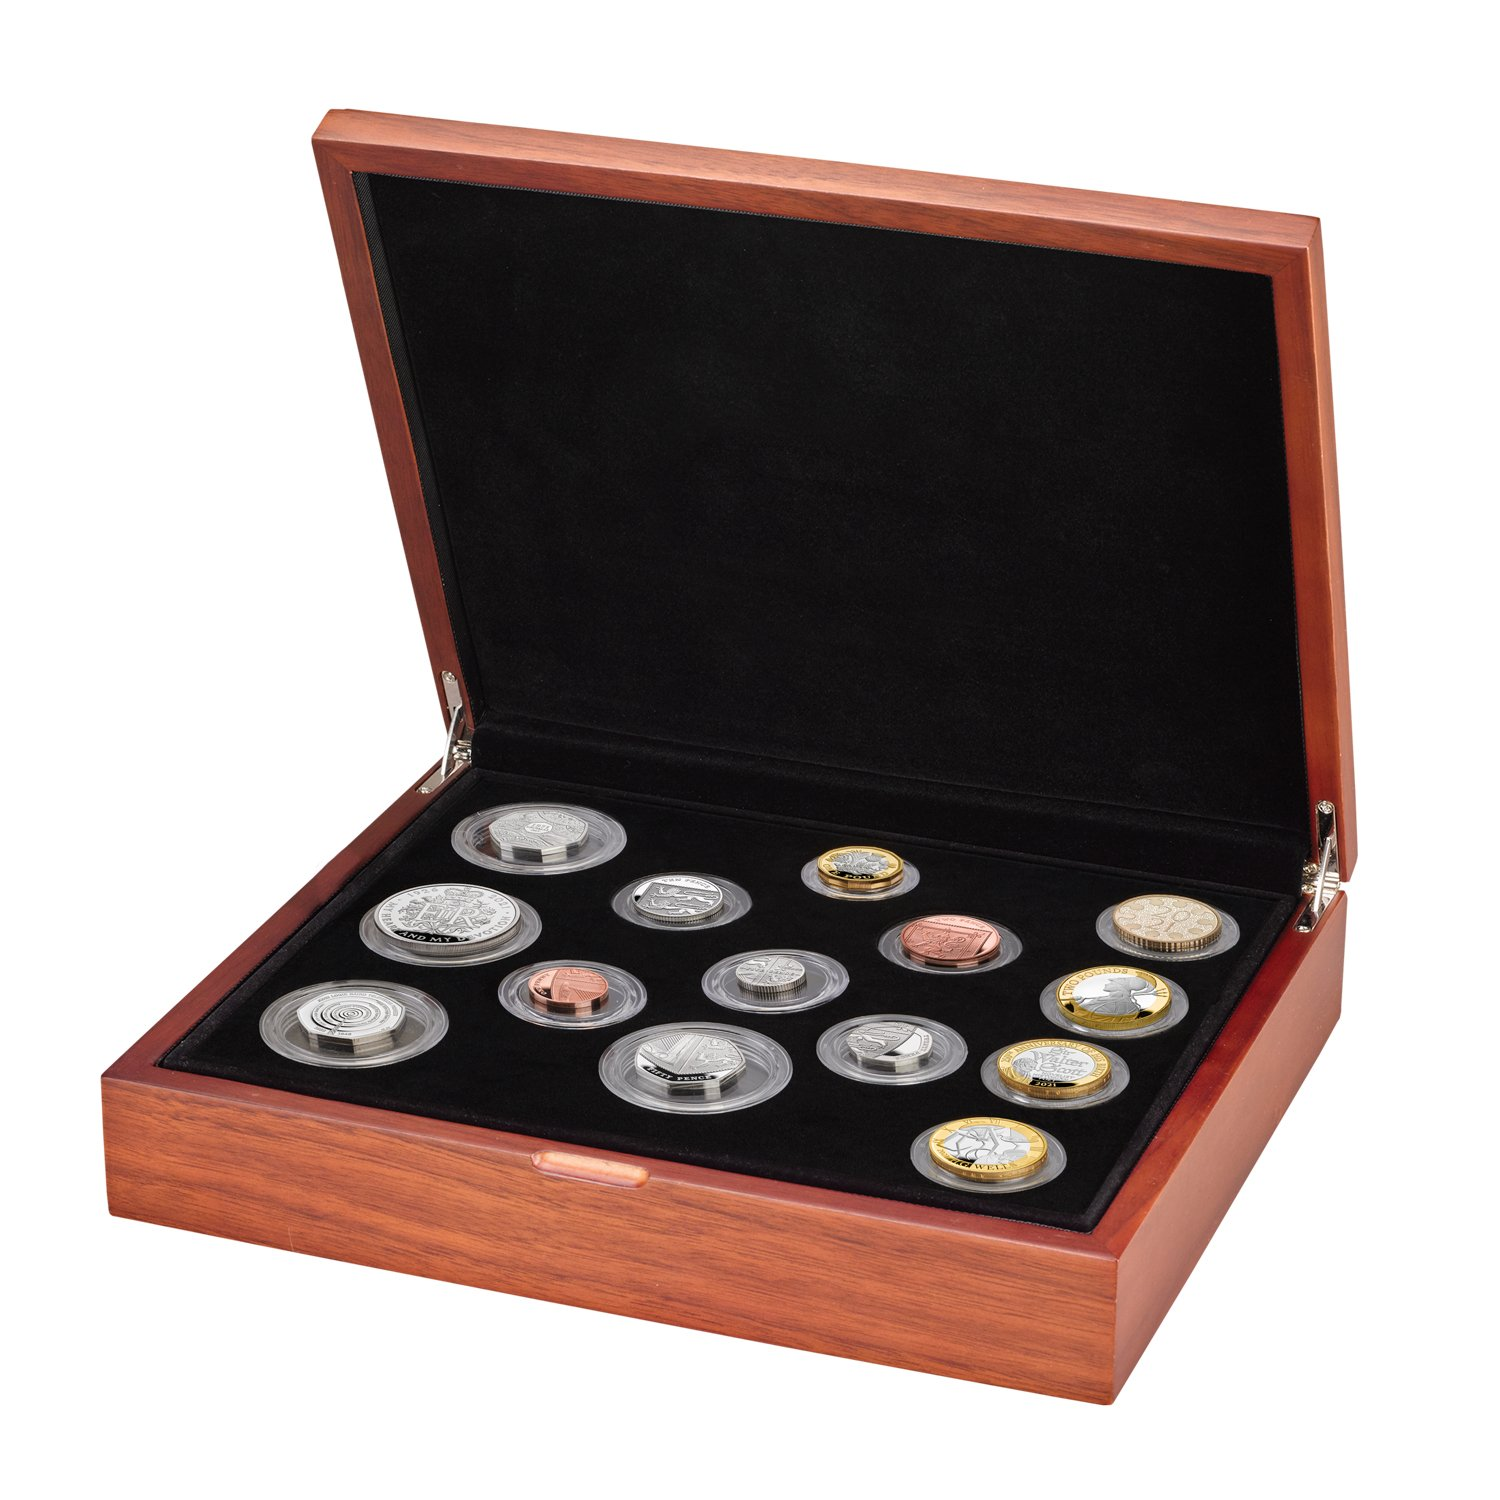 2021 United Kingdom Premium Proof Coin Set